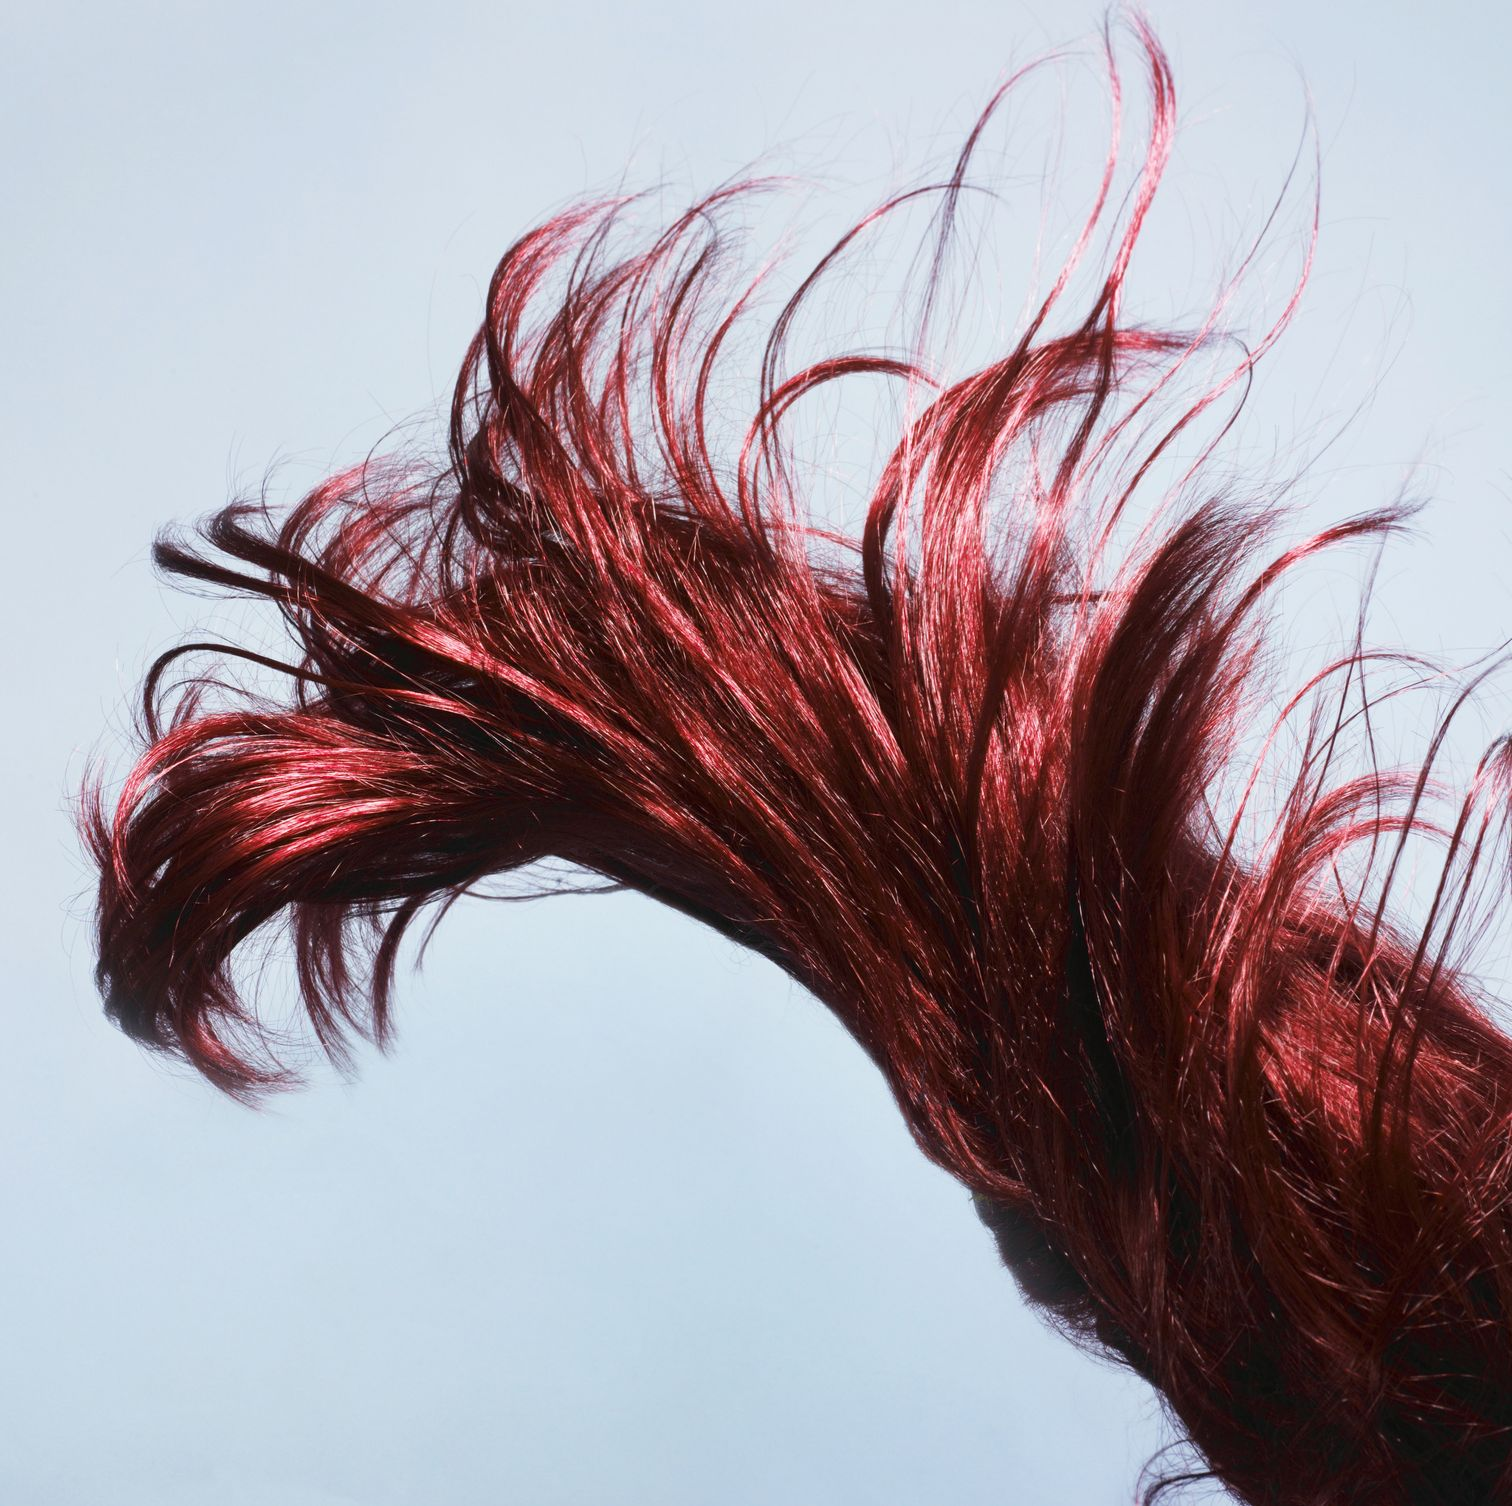 15 Pro Hair Color Tricks for Dyeing Your Hair at Home